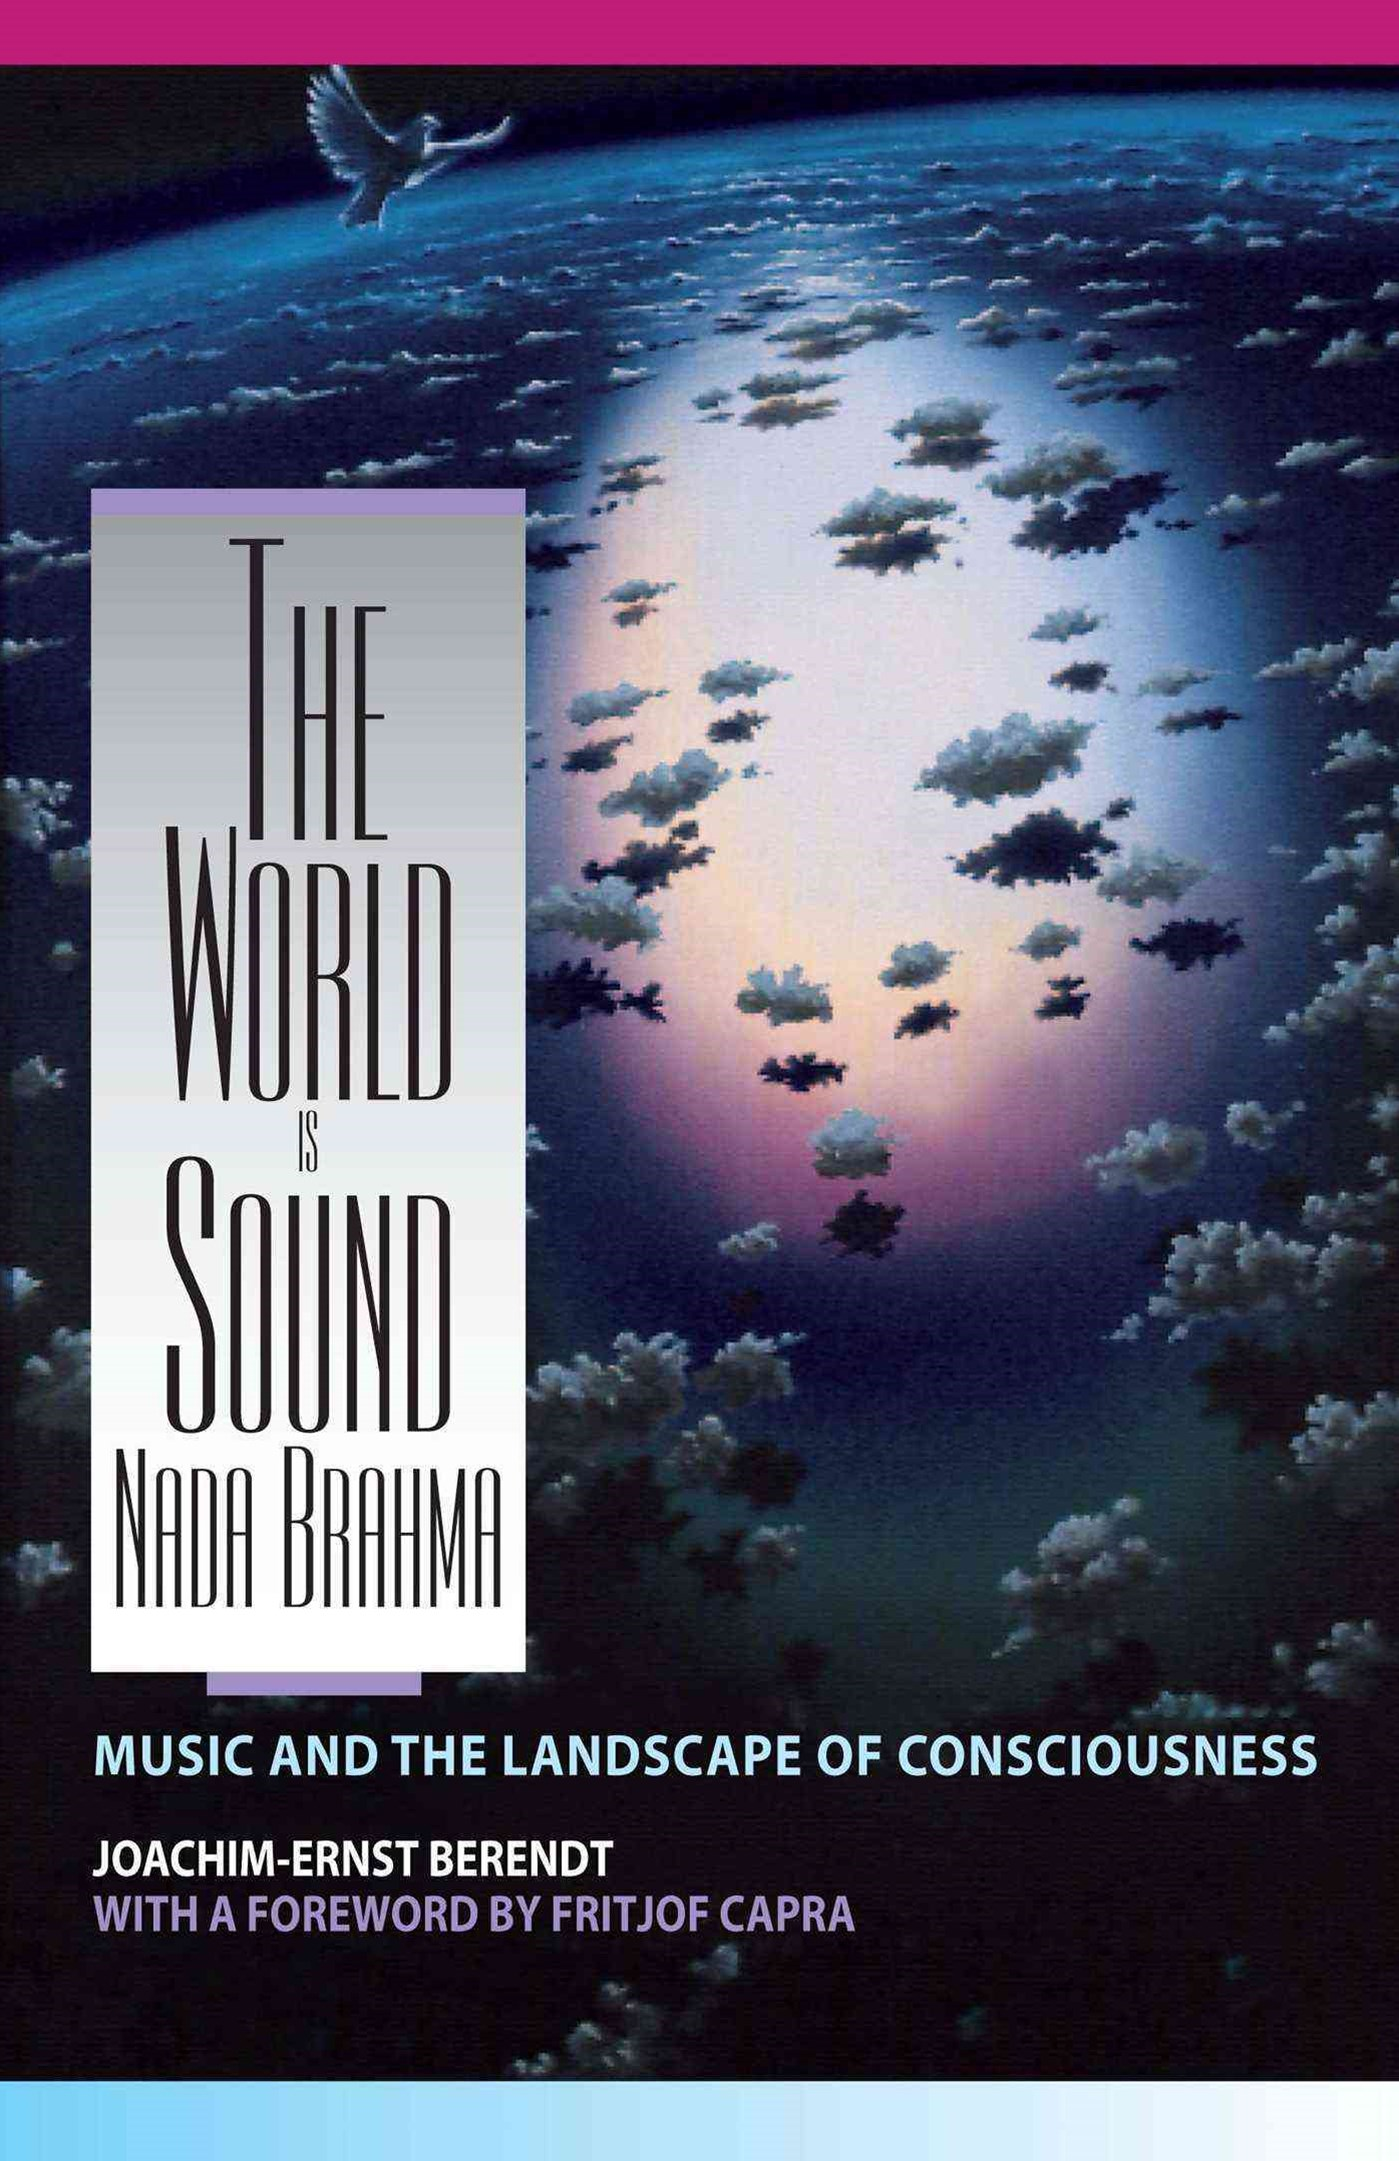 Nada Brahma - the World is Sound